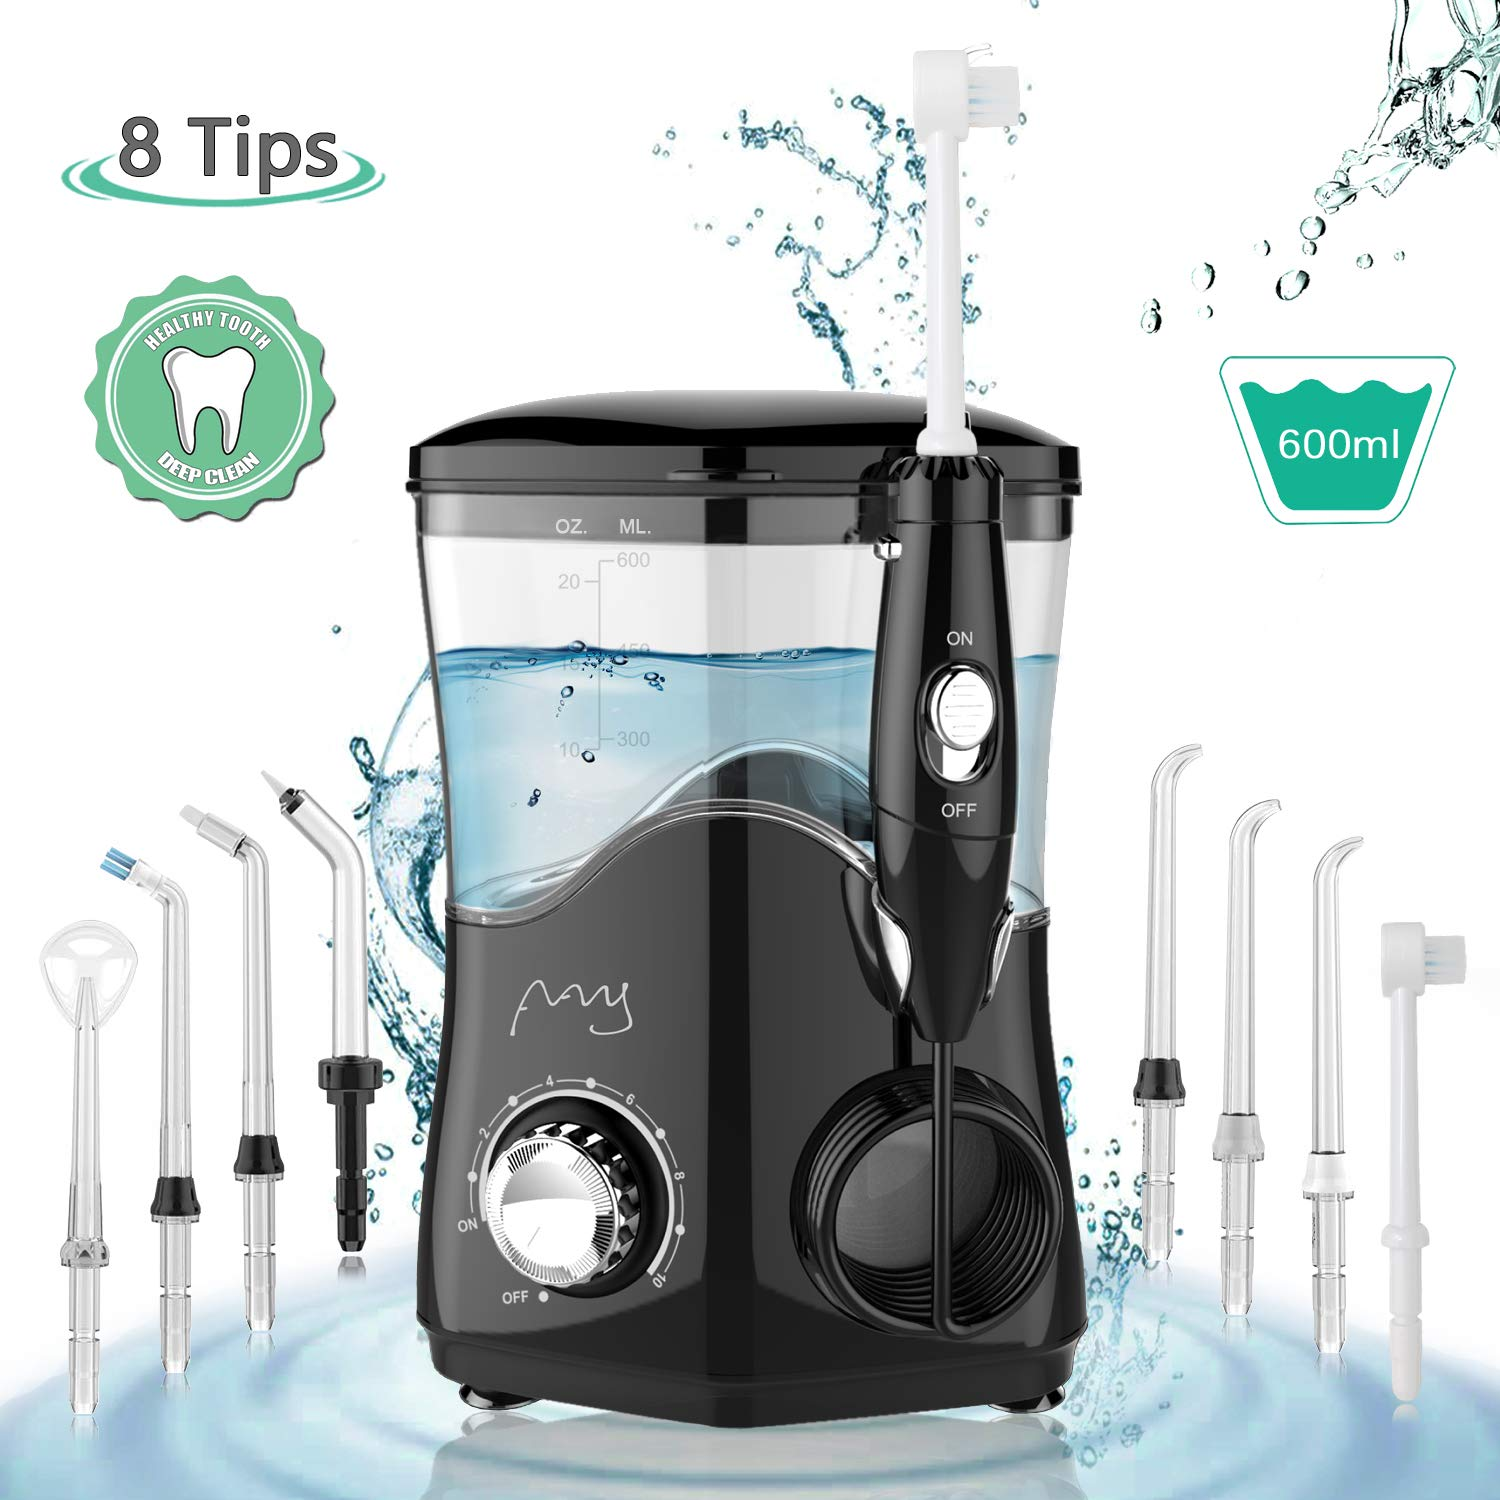 Dental Water Flosser, Water Pick Teeth Cleaner Professional 600ml Electric Oral Irrigator Countertop with 8 Multifunctional Tips 10 Adjustable Pressures for Tooth Braces Care Home